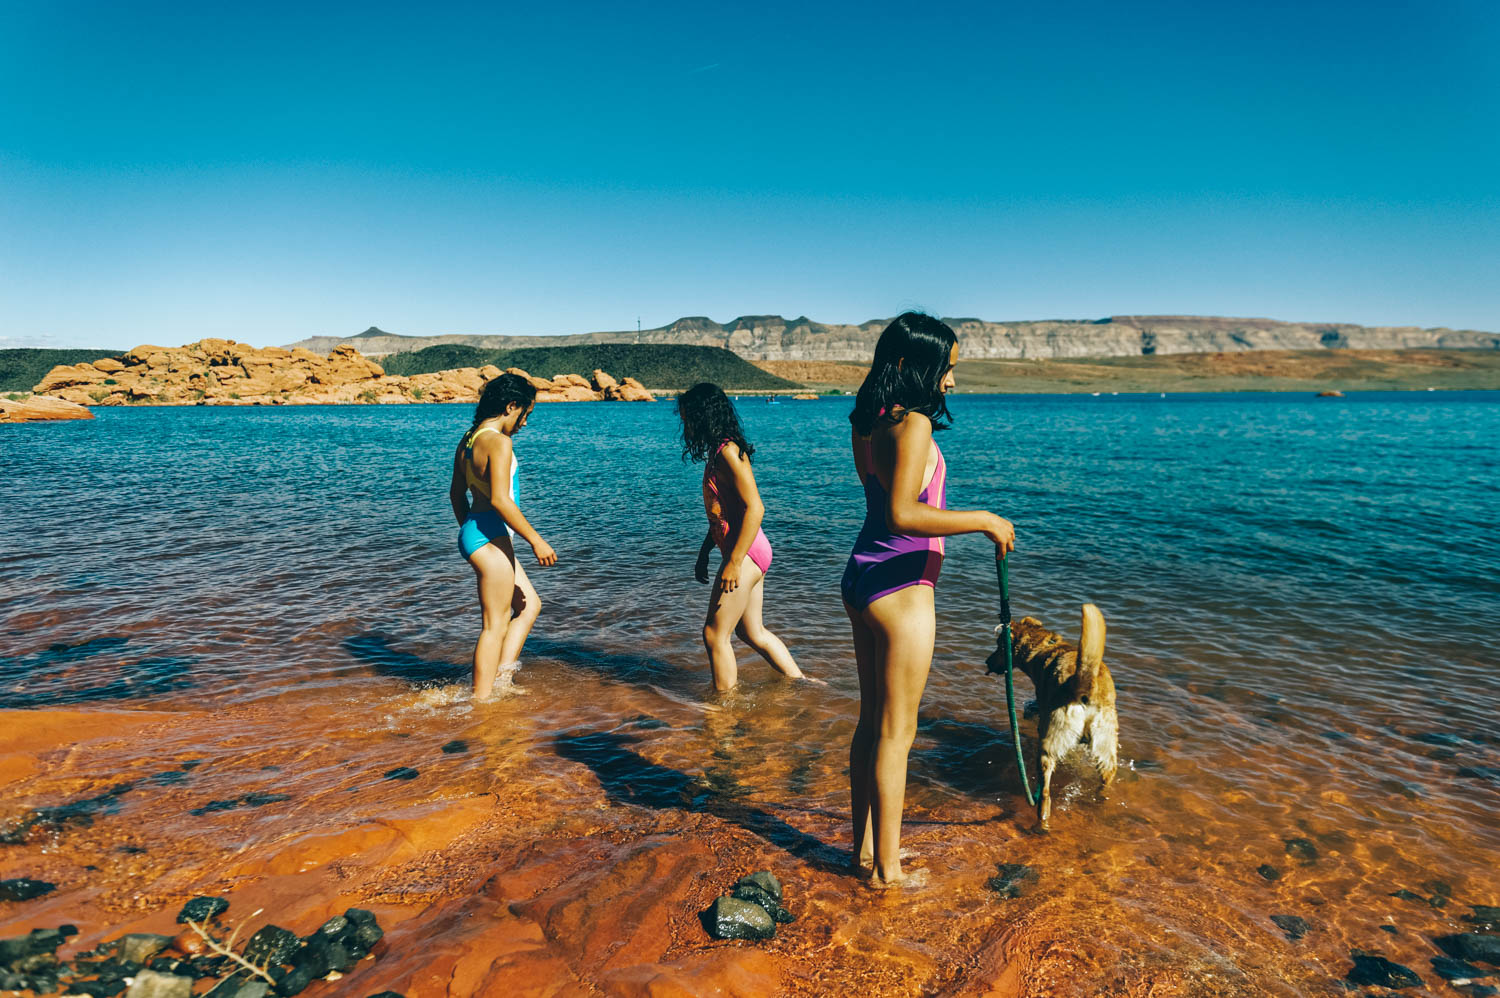 We spent the first night at Las Vegas Bay Campground and the second one at Sand Hollow State Park, near St. George. We were so happy to swim in this beautiful (and freezing cold) water, surrounded by red rock cliffs and black volcanic rocks.